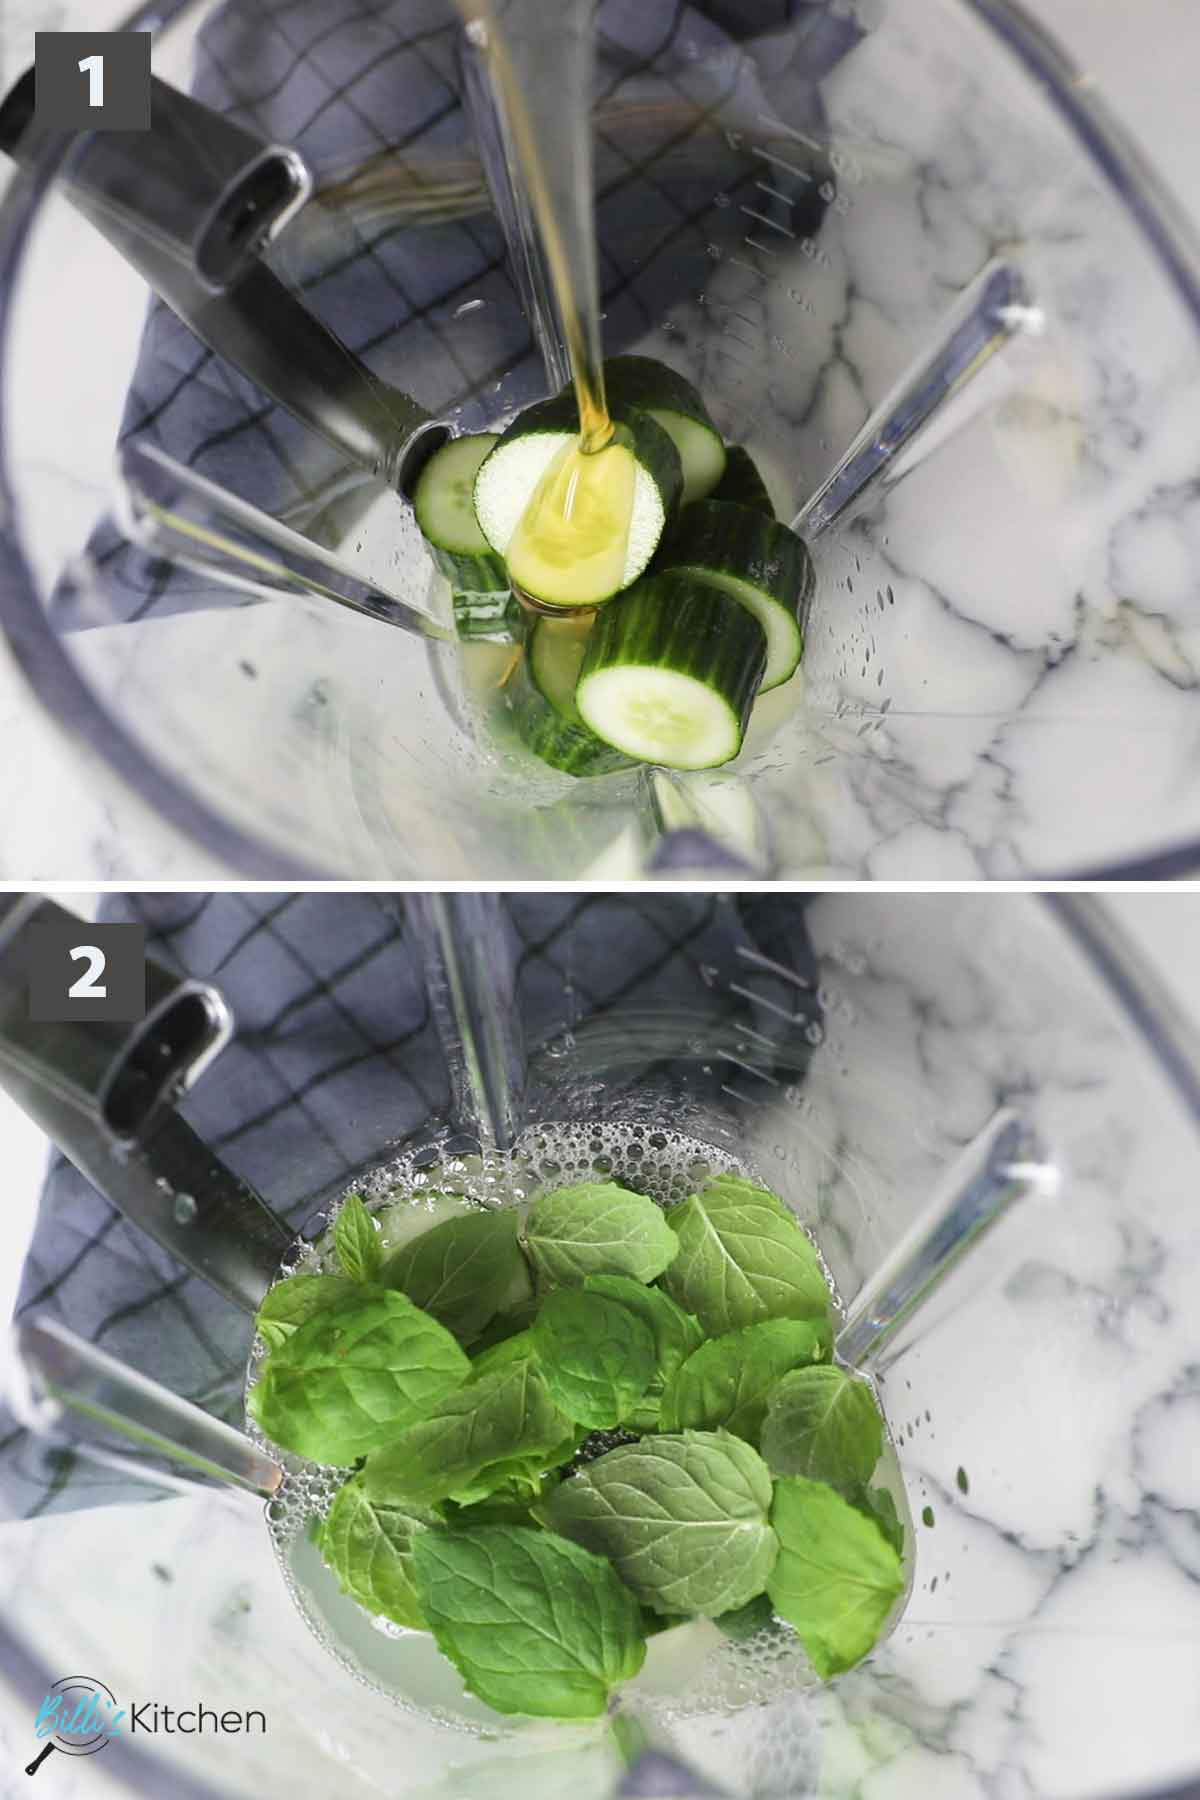 Updated first part of a collage of images showing the step by step process of preparing cucumber lemonade.